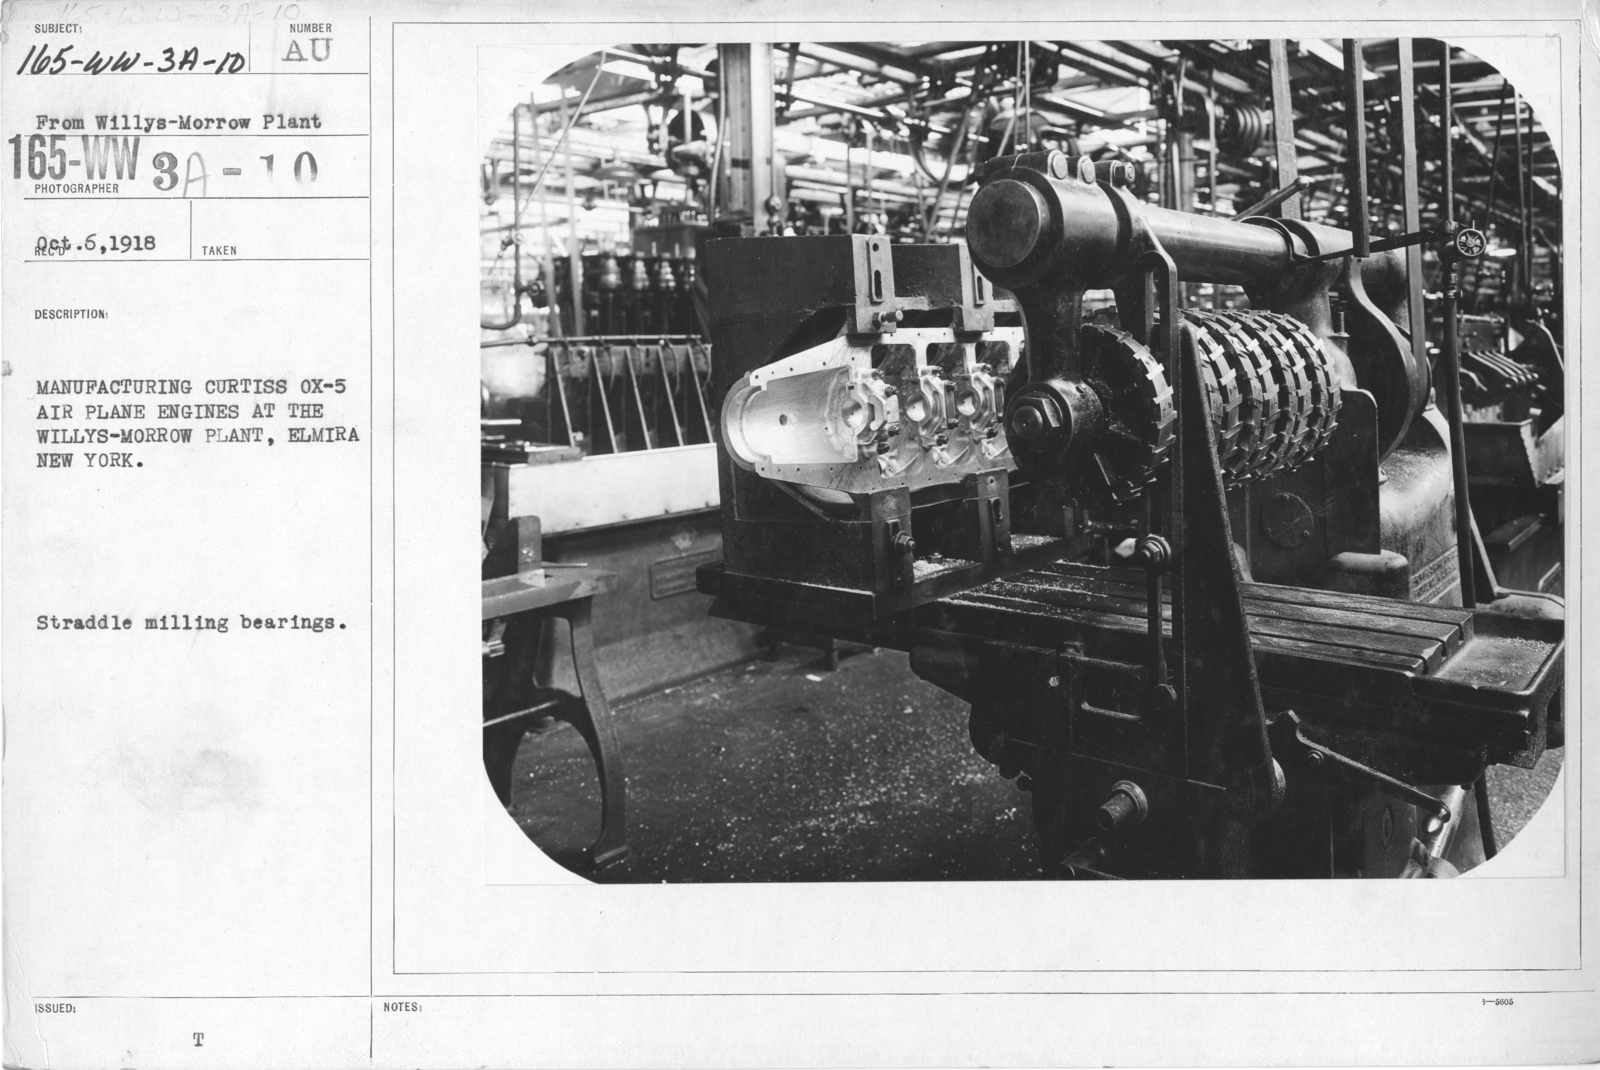 Airplanes - Engines - Manufacturing Curtiss Ox-5 airplane engines at the Willys-Morrow Plant, Elmira,  New York. Straddle milling bearings